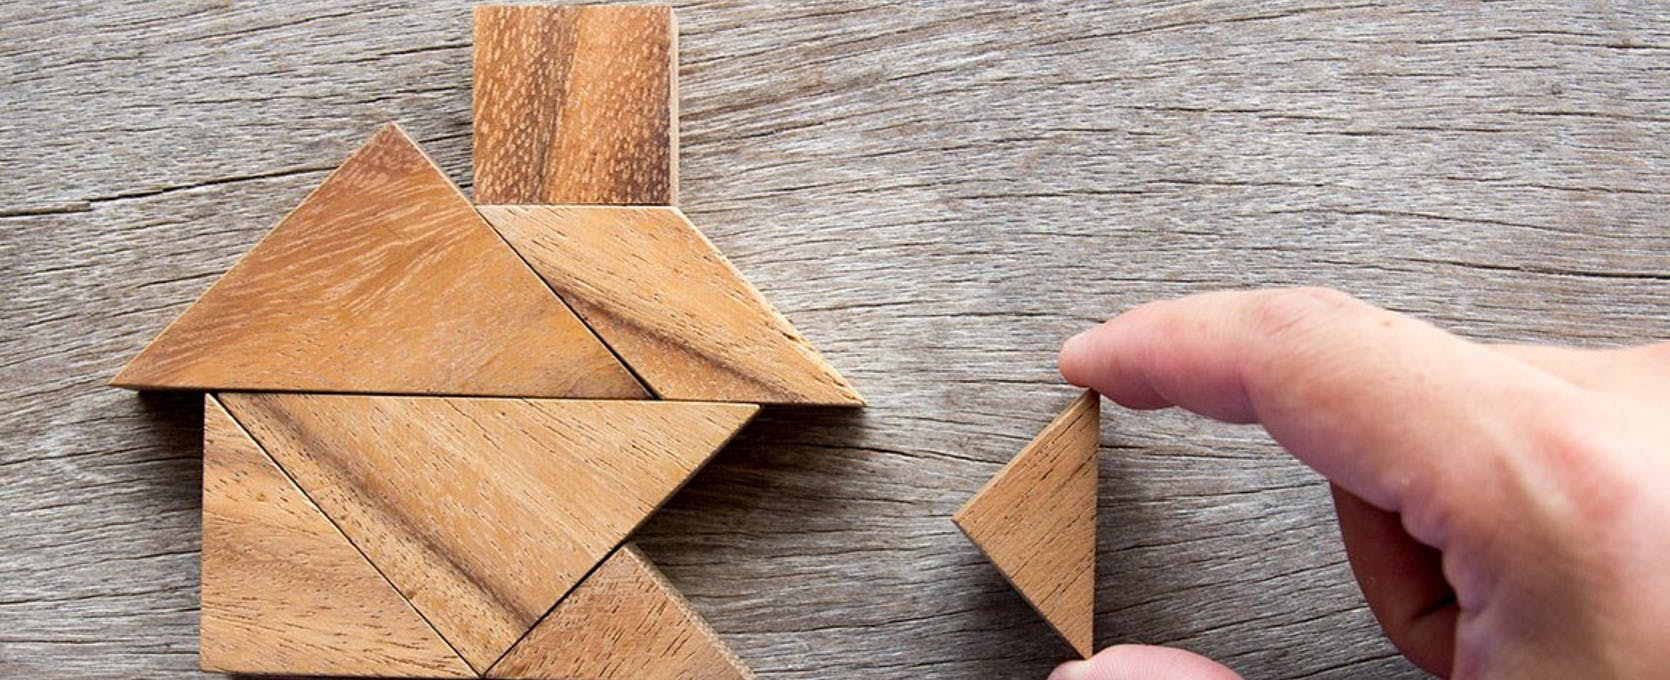 Wooden tangram puzzle in the shape of a house